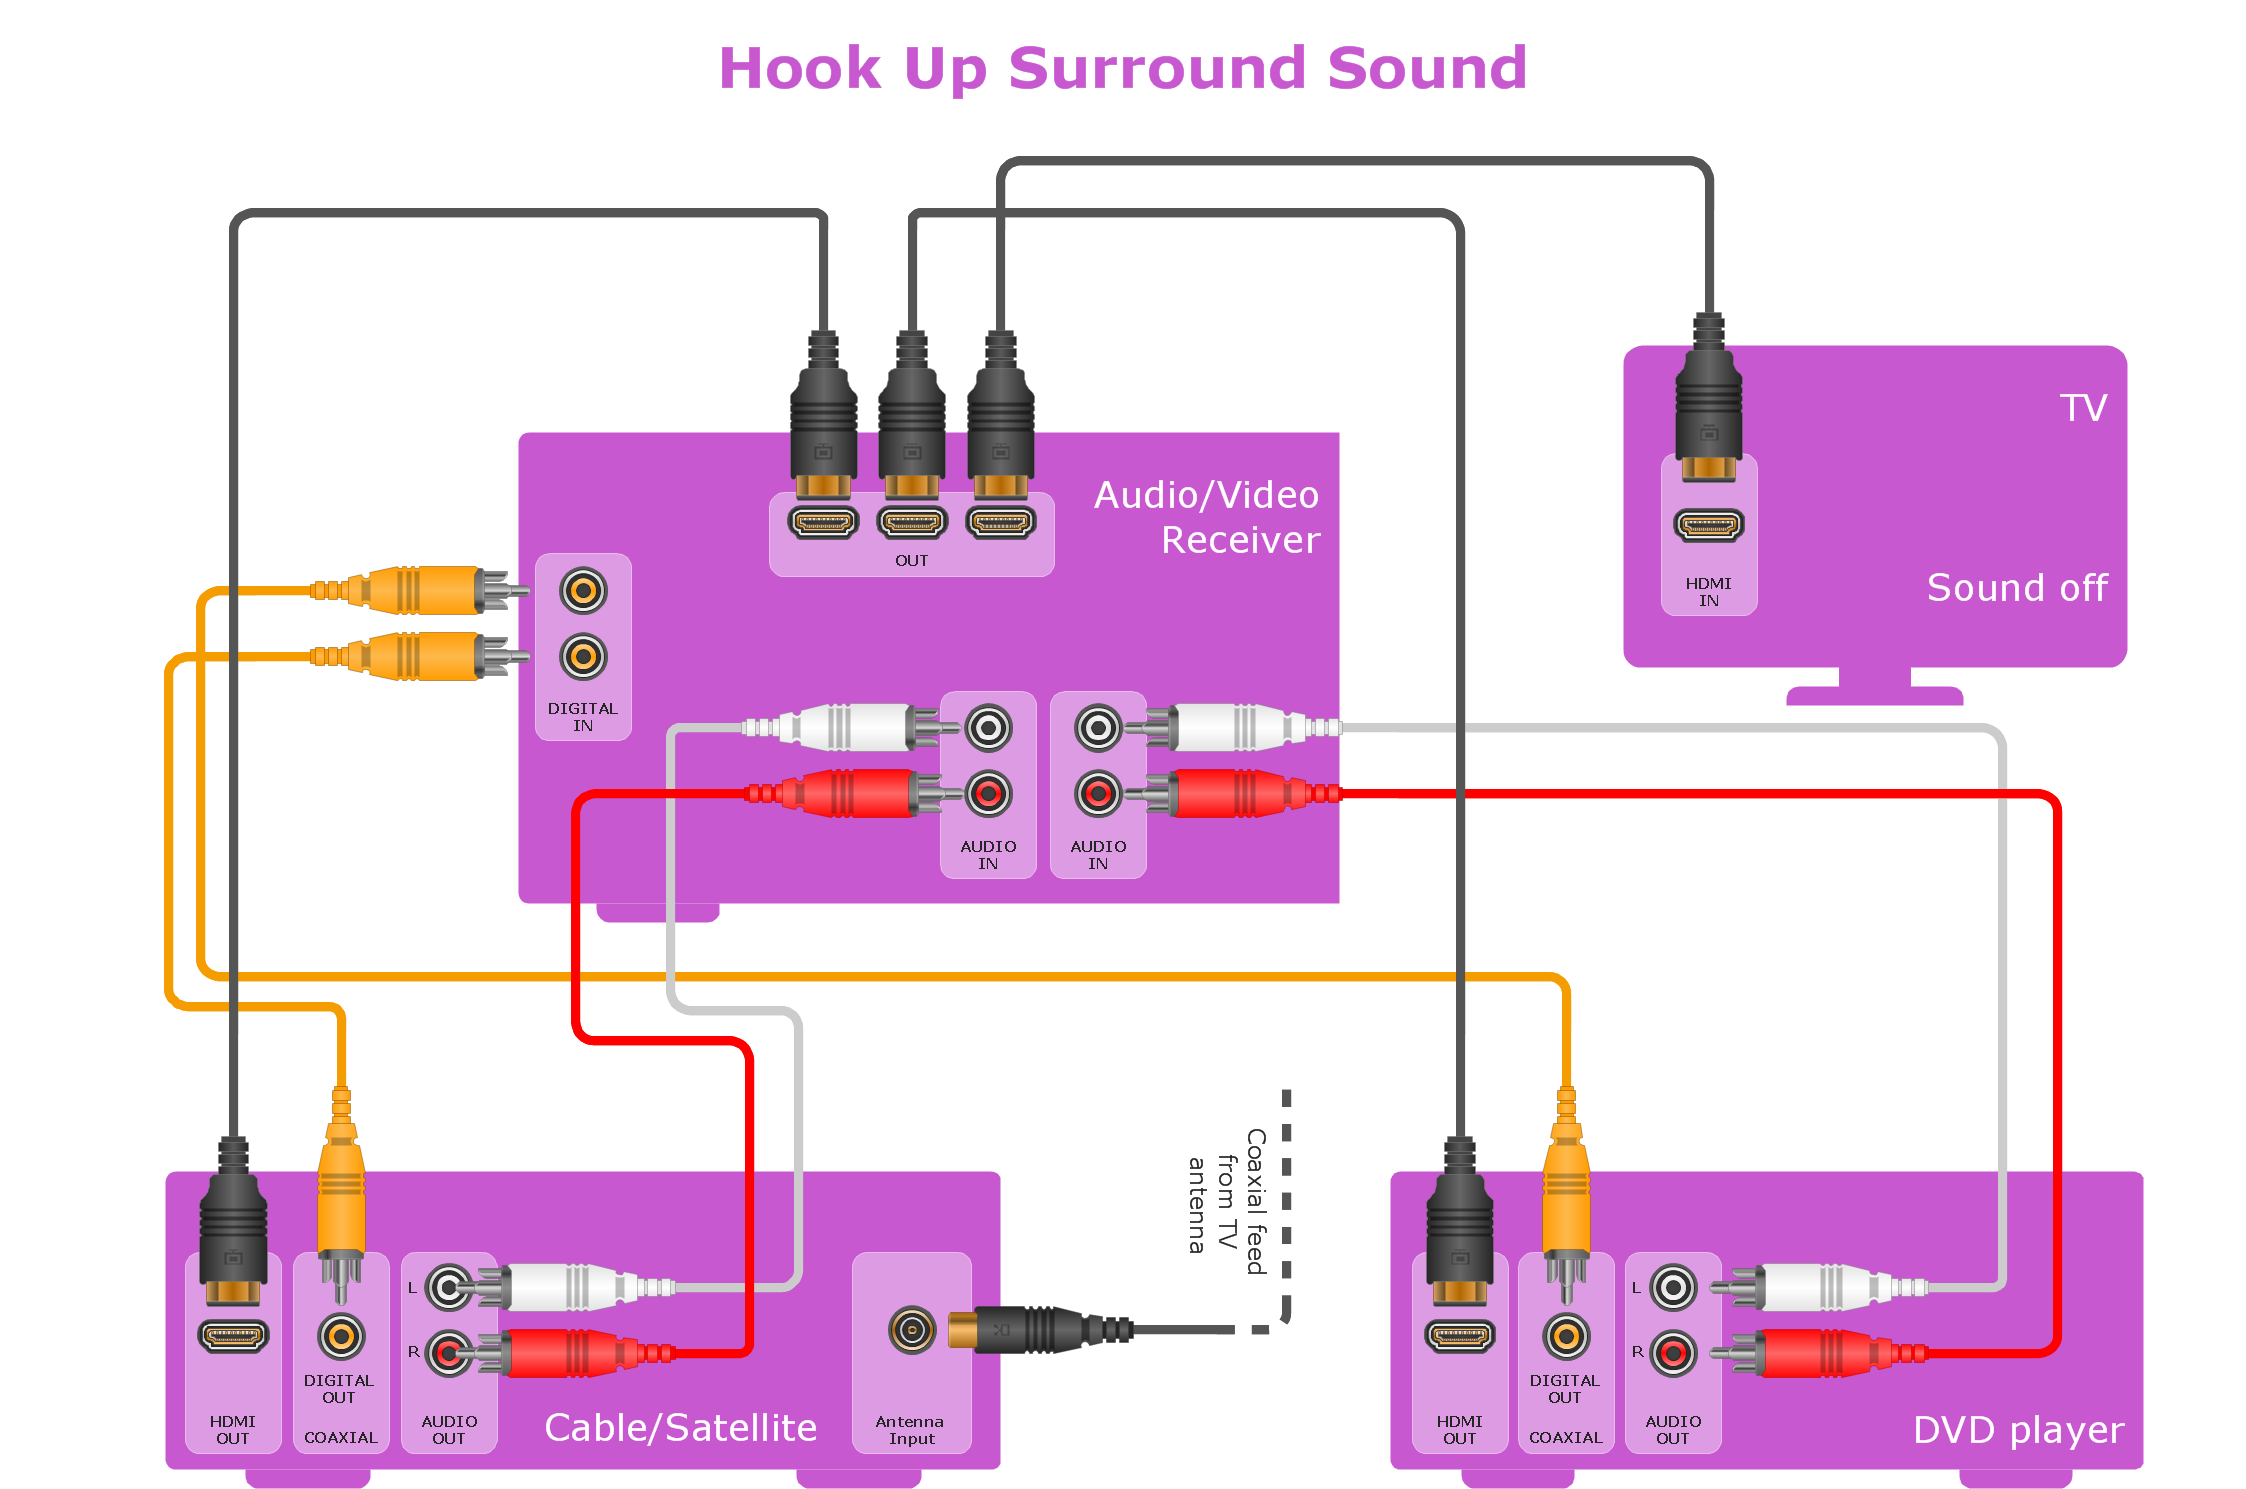 Hookup drawing - Home entertainment system with surround sound